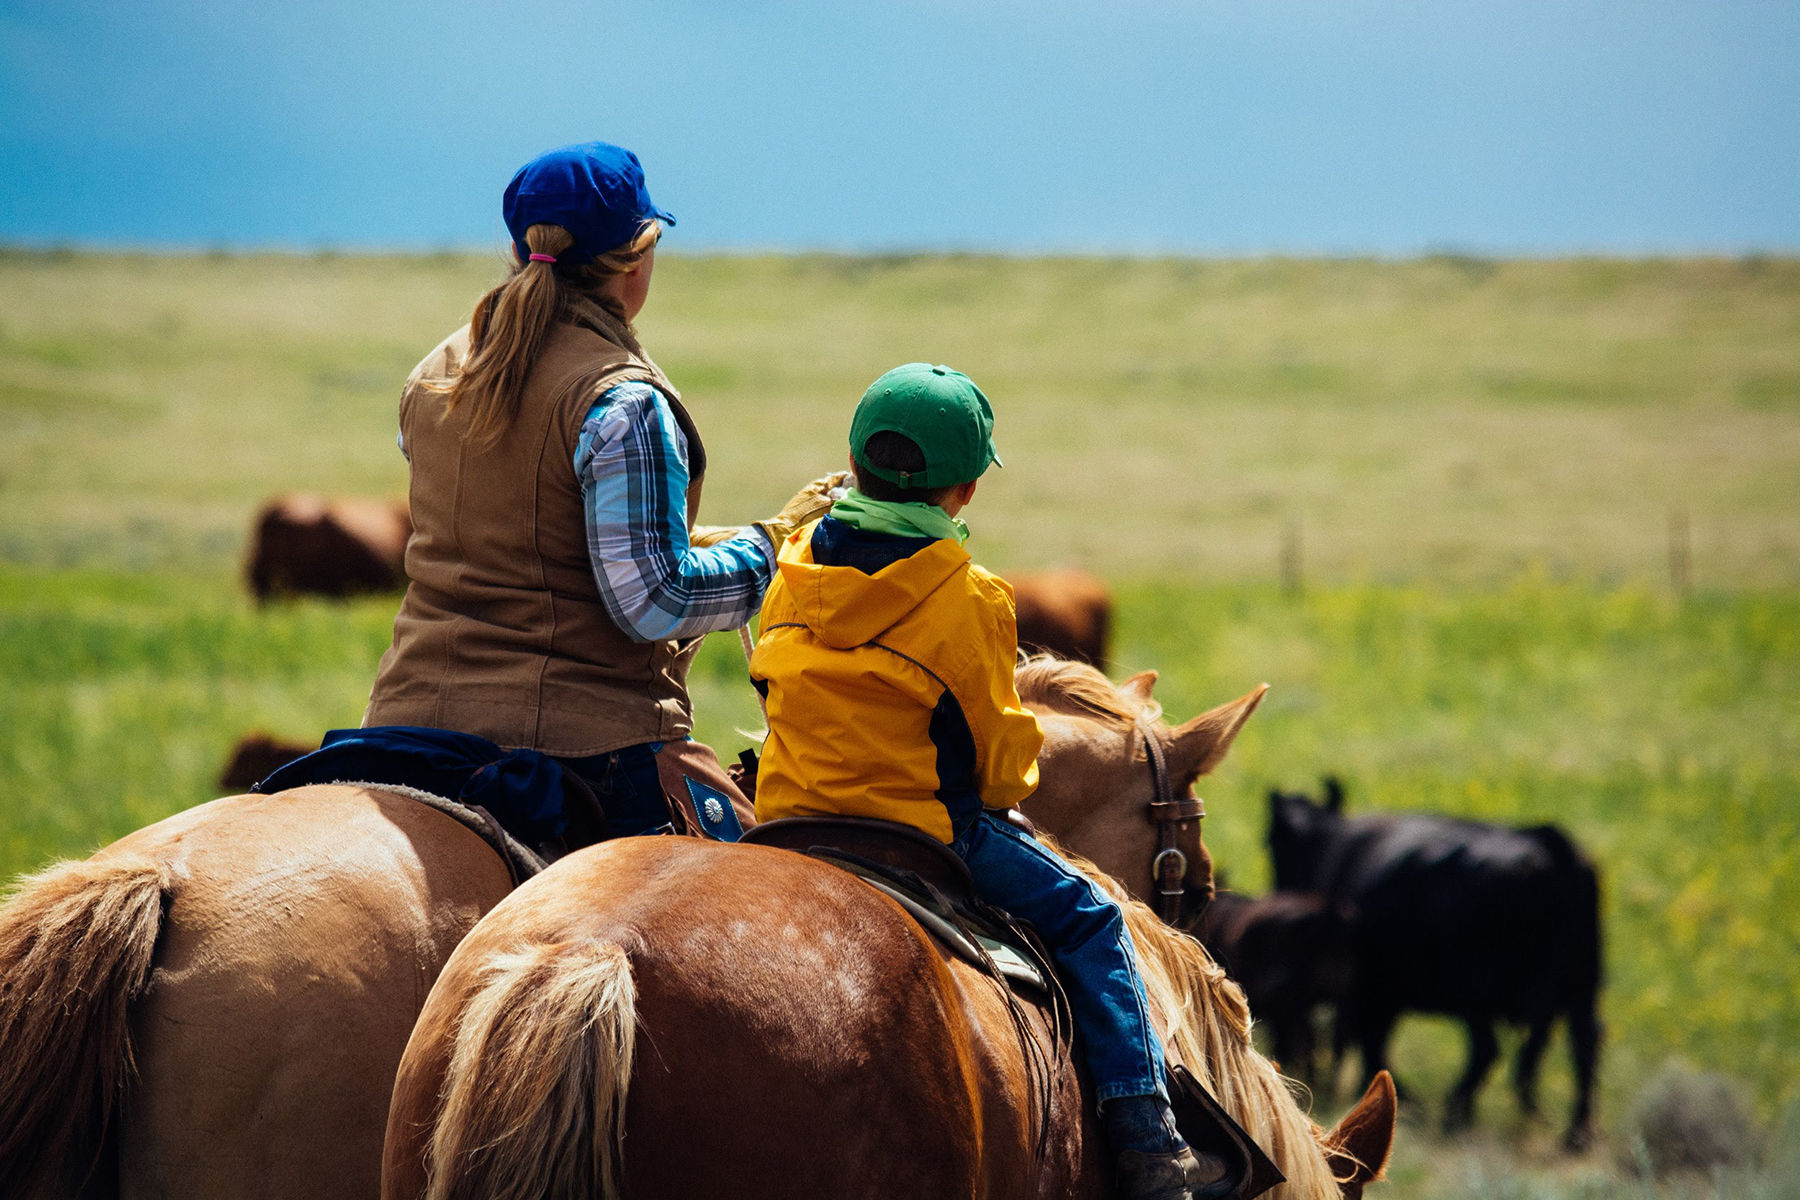 Mother and son riding horseback among cattle on ranch.